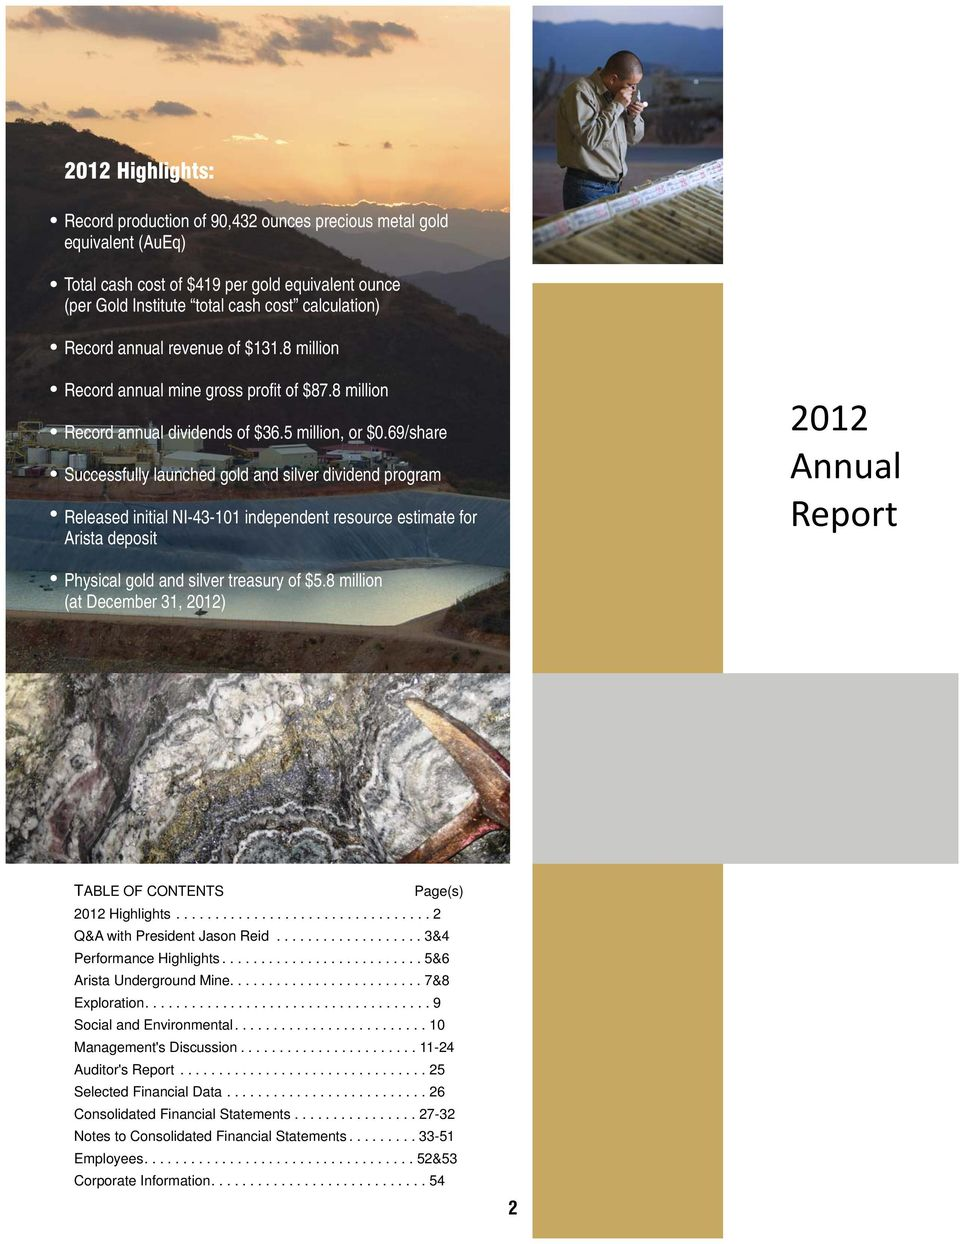 69/share Successfully launched gold and silver dividend program Released initial NI-43-101 independent resource estimate for Arista deposit 2012 Annual Report Physical gold and silver treasury of $5.